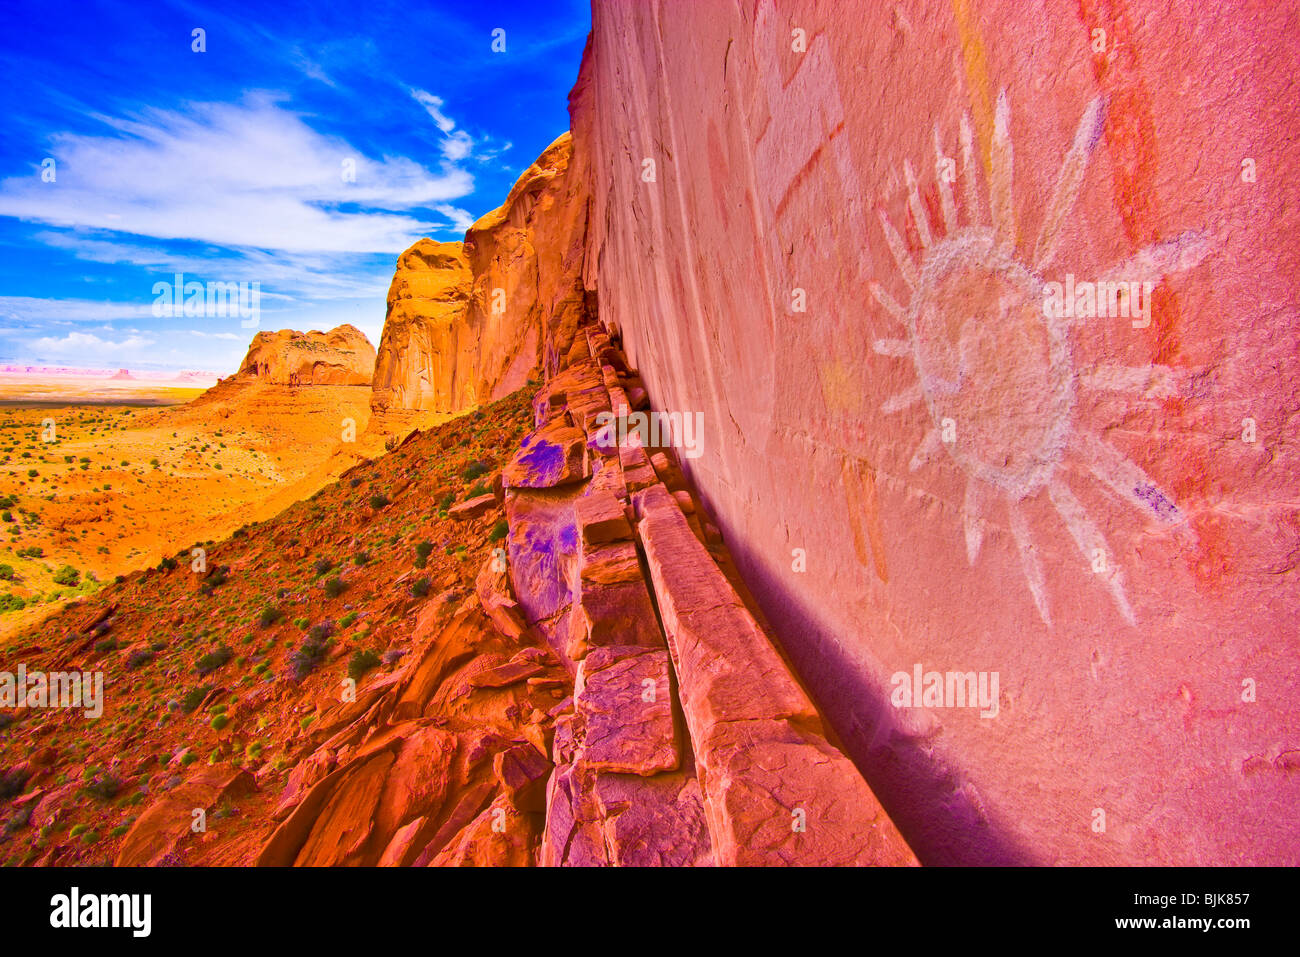 Sun ancienne pictogramme, le nord de l'Arizona, Basketmaker peintures culture Photo Stock